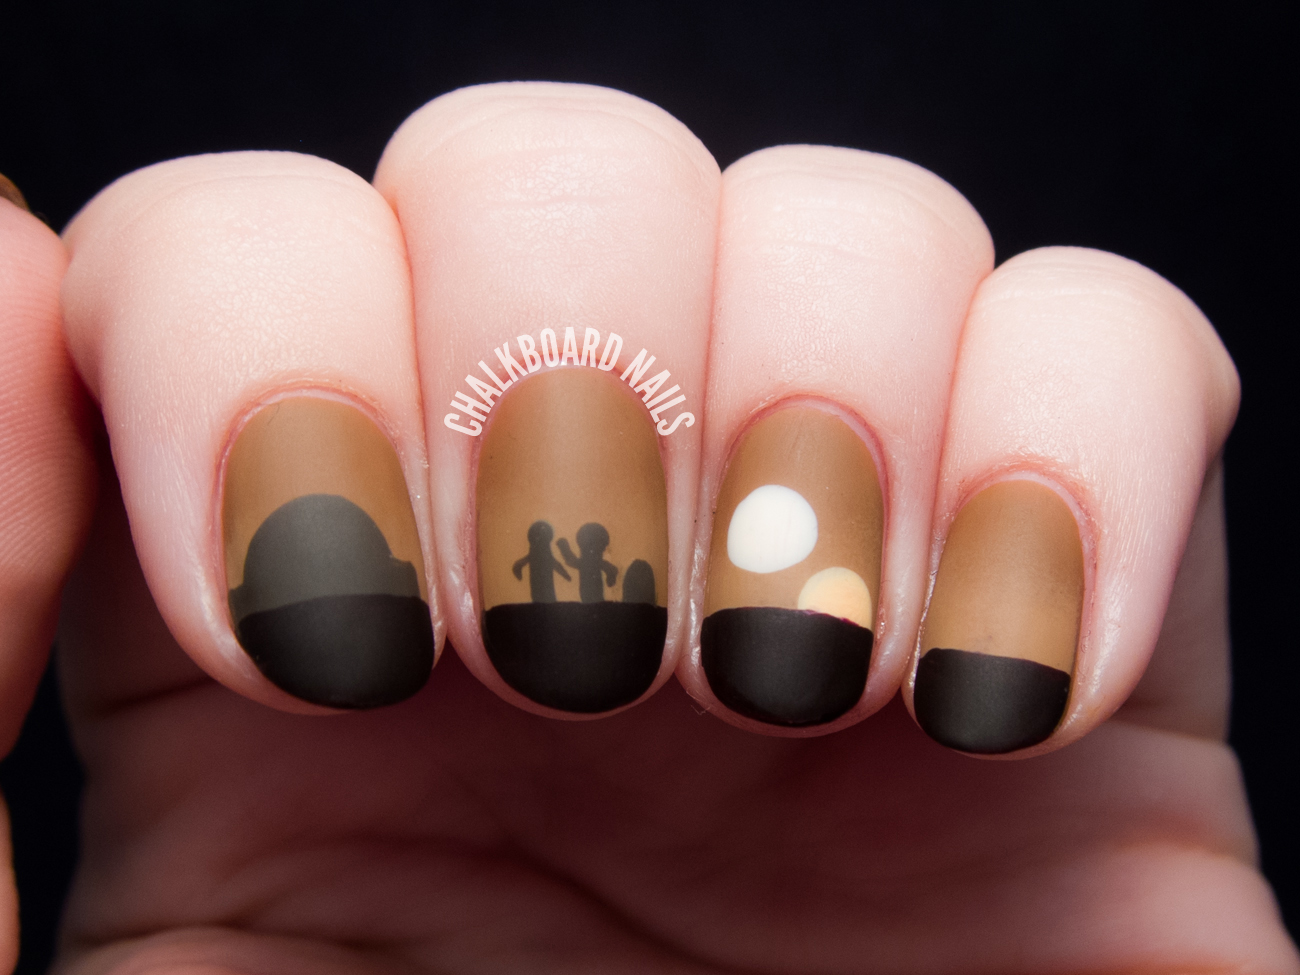 Sunset On Tatooine - Star Wars Nail Art - Sunset On Tatooine - Star Wars Nail Art Chalkboard Nails Nail